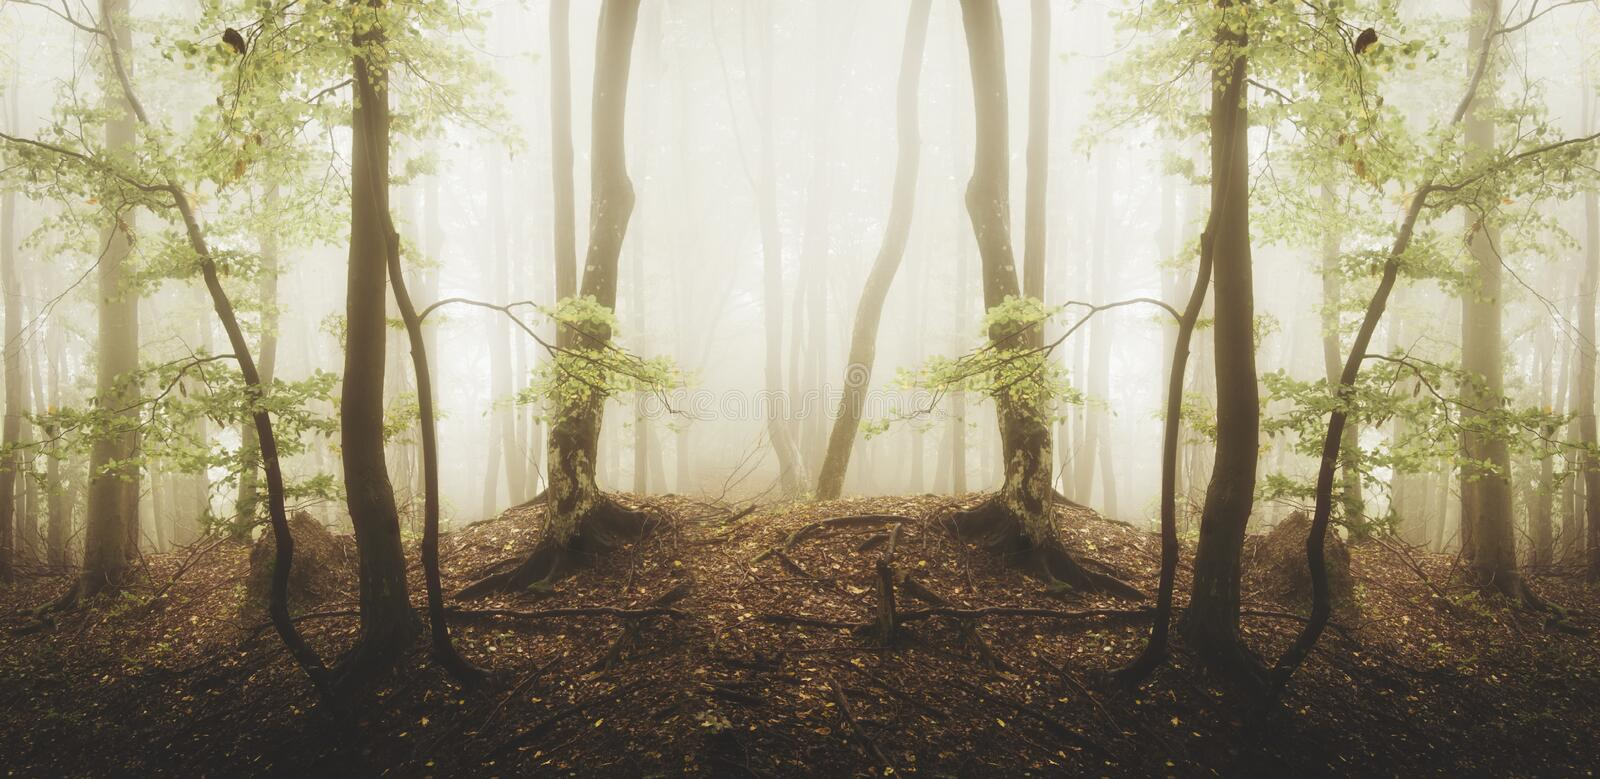 Surreal forest with fog and green foliage. Surreal symmetrical forest with fog and green foliage. Mysterious enchanted woods in Transylvania with thick fog stock photography